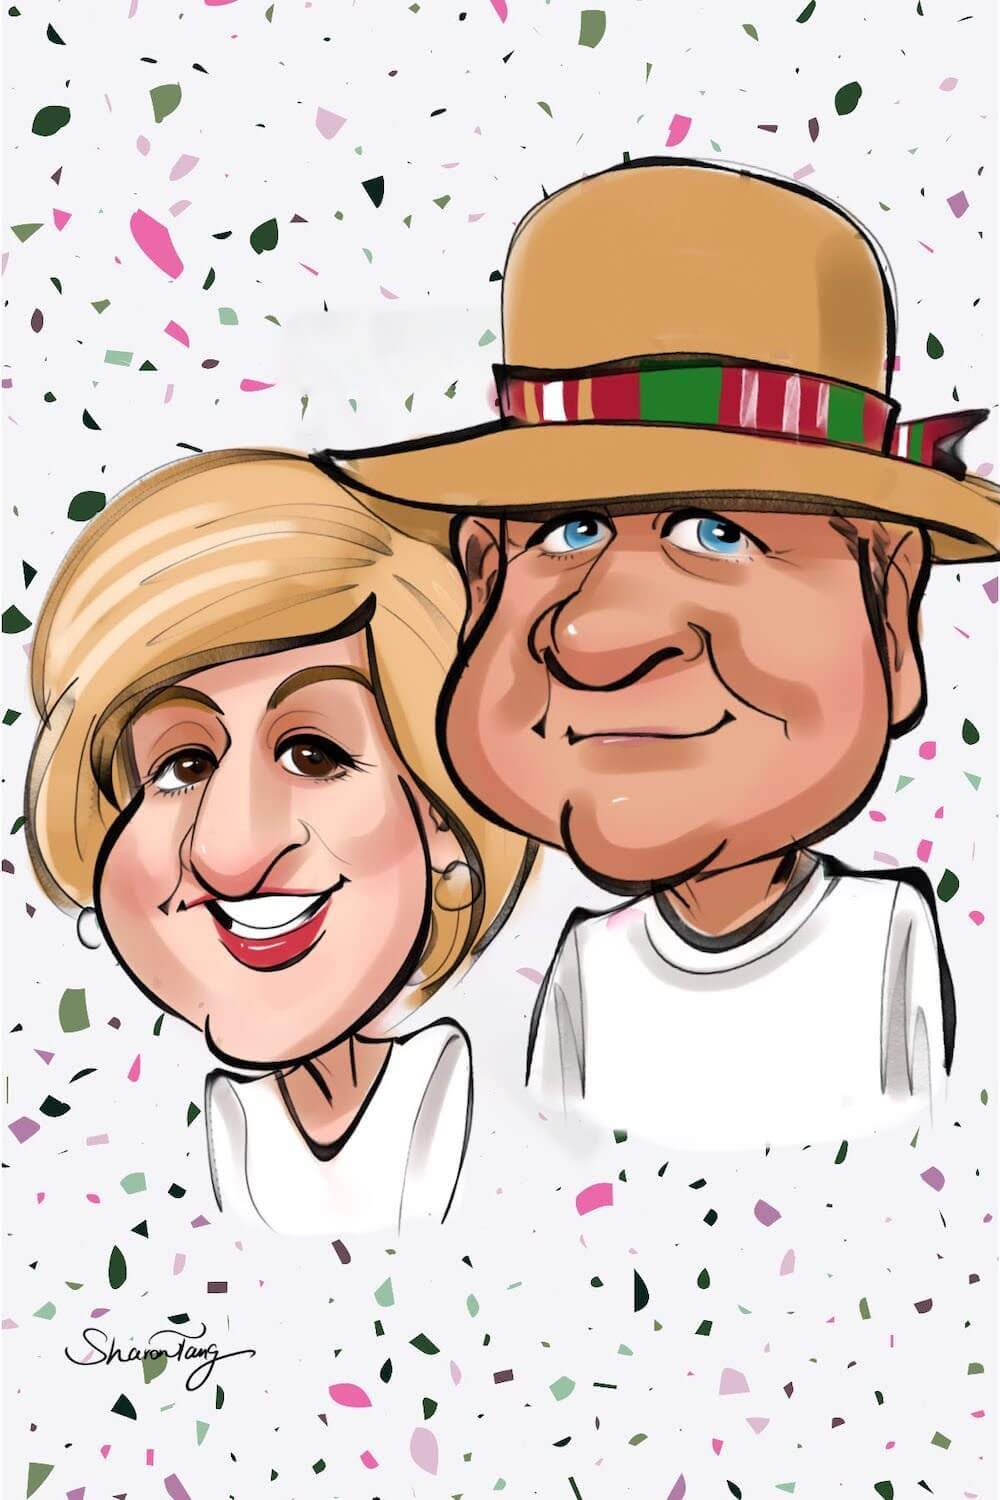 anniversary caricature gift by Sharontangcreation.comanniversary caricature gift by Sharontangcreation.com